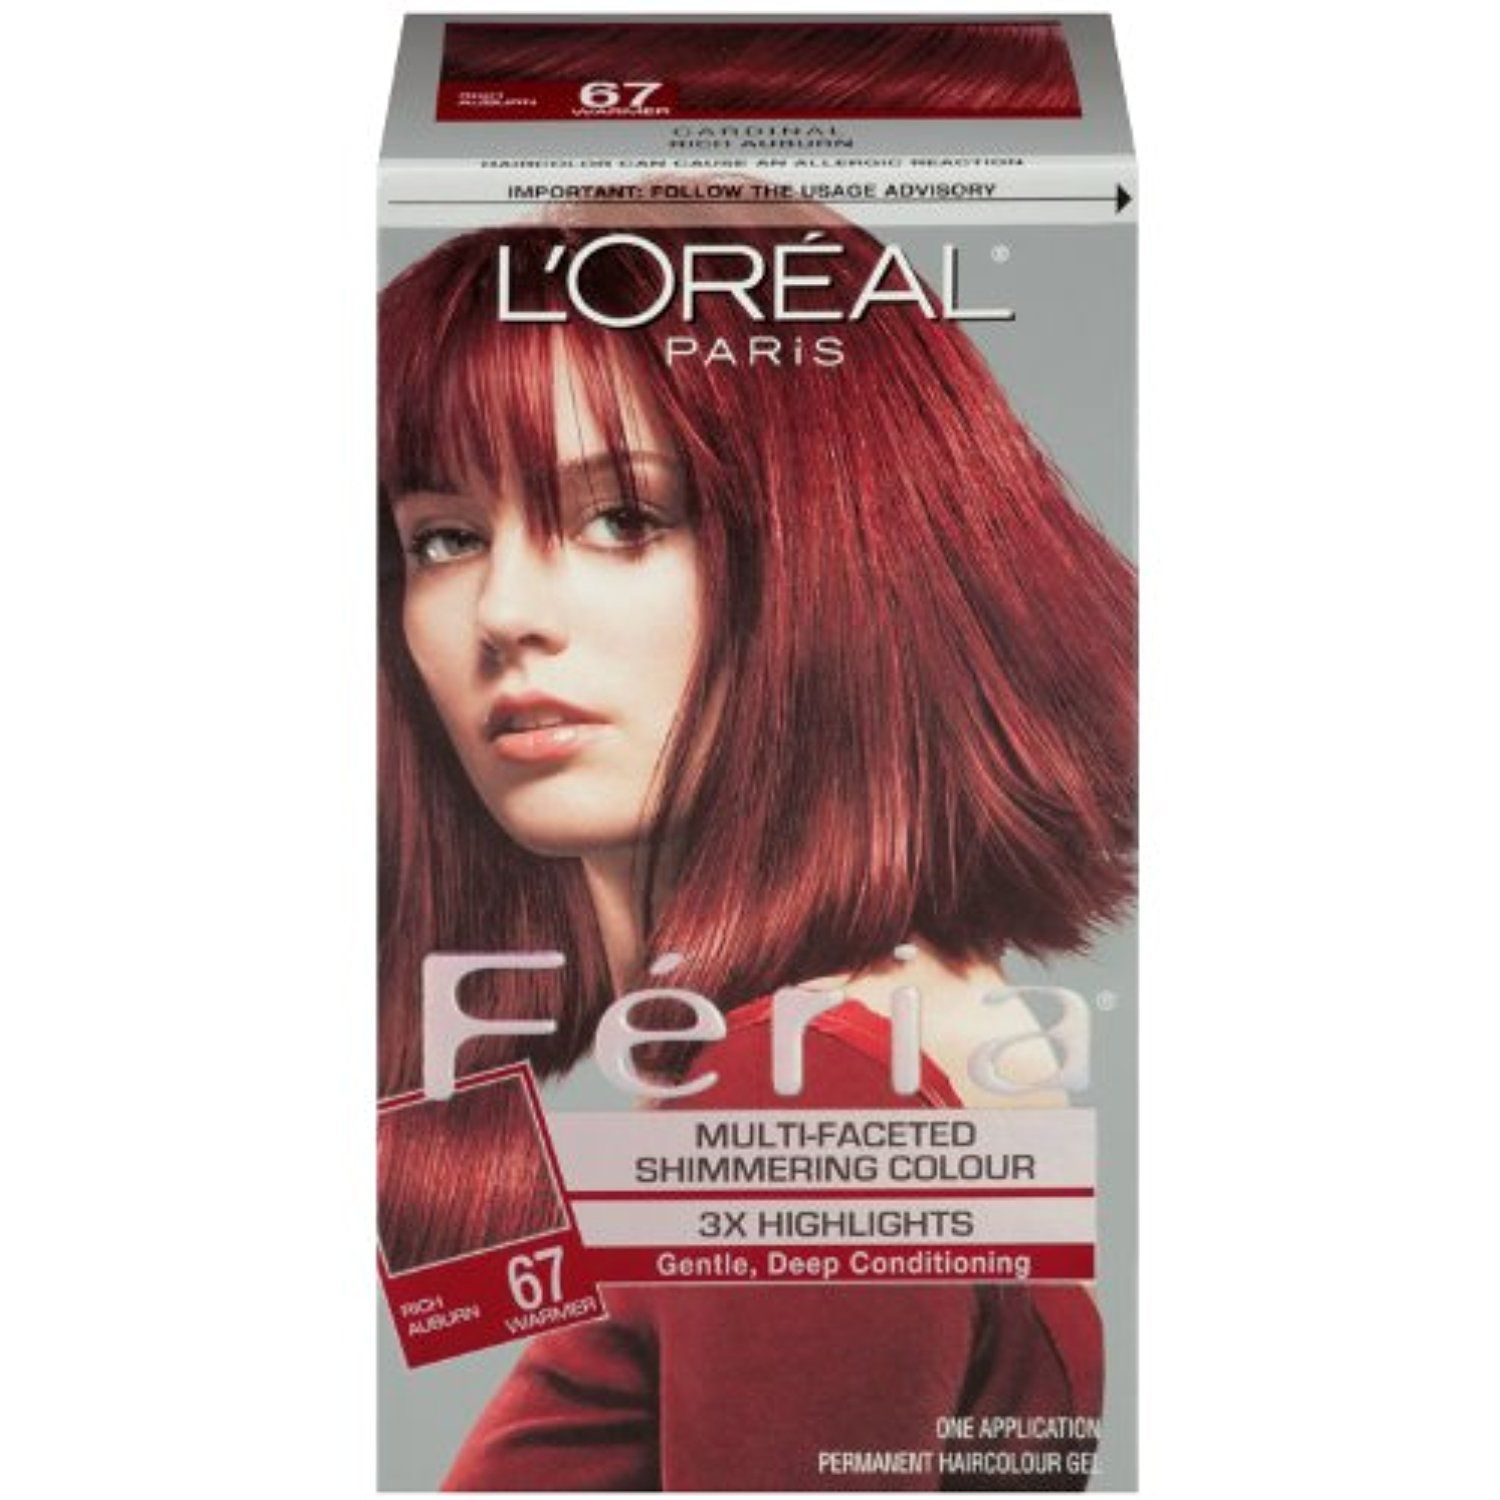 Loreal Paris Feria Hair Color 67 Rich Auburncardinal More Info